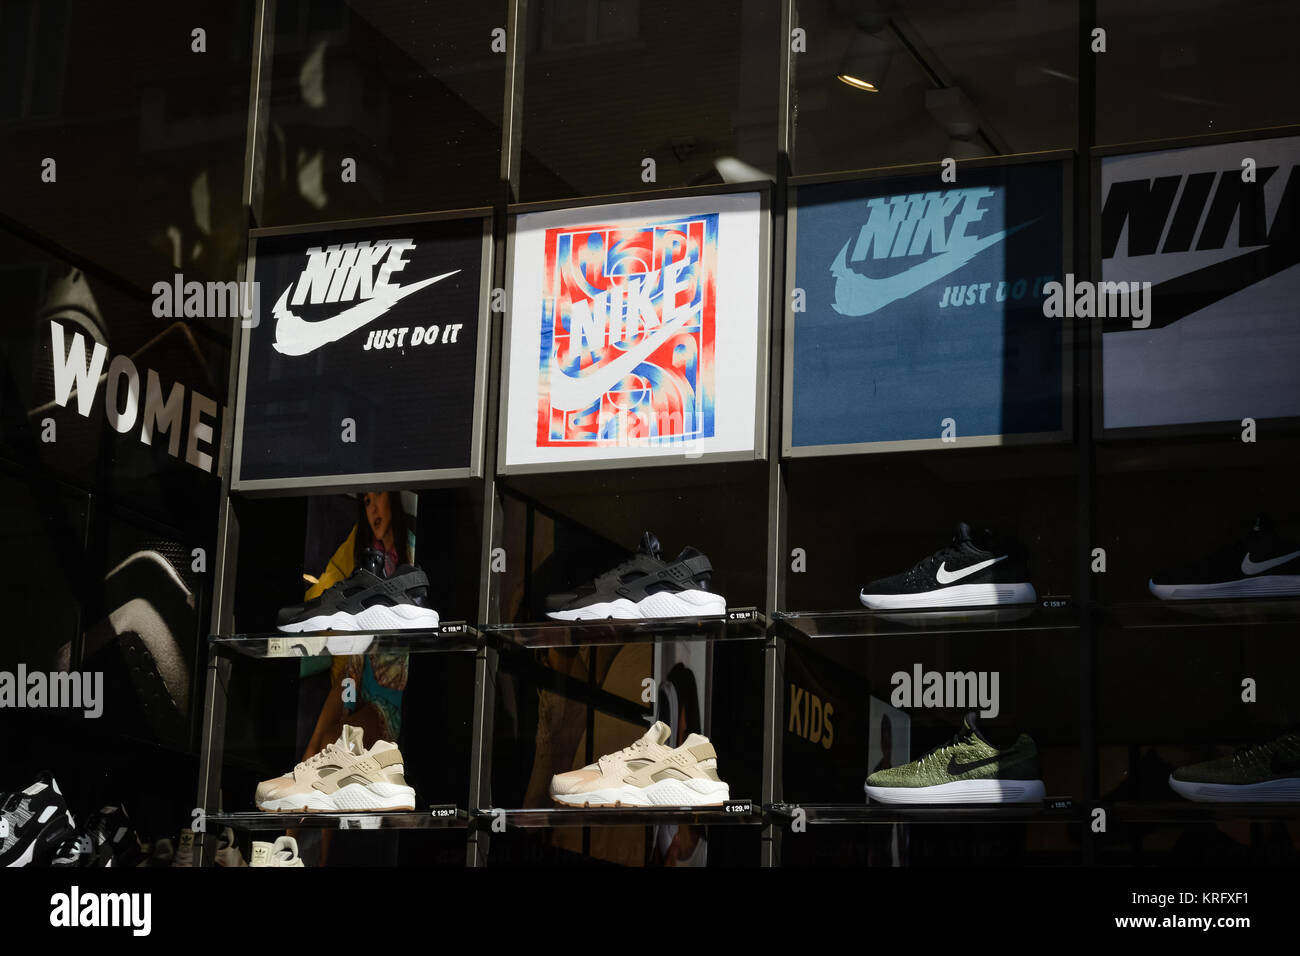 7b3e2c1b90 Foot Locker Stock Photos   Foot Locker Stock Images - Page 2 - Alamy